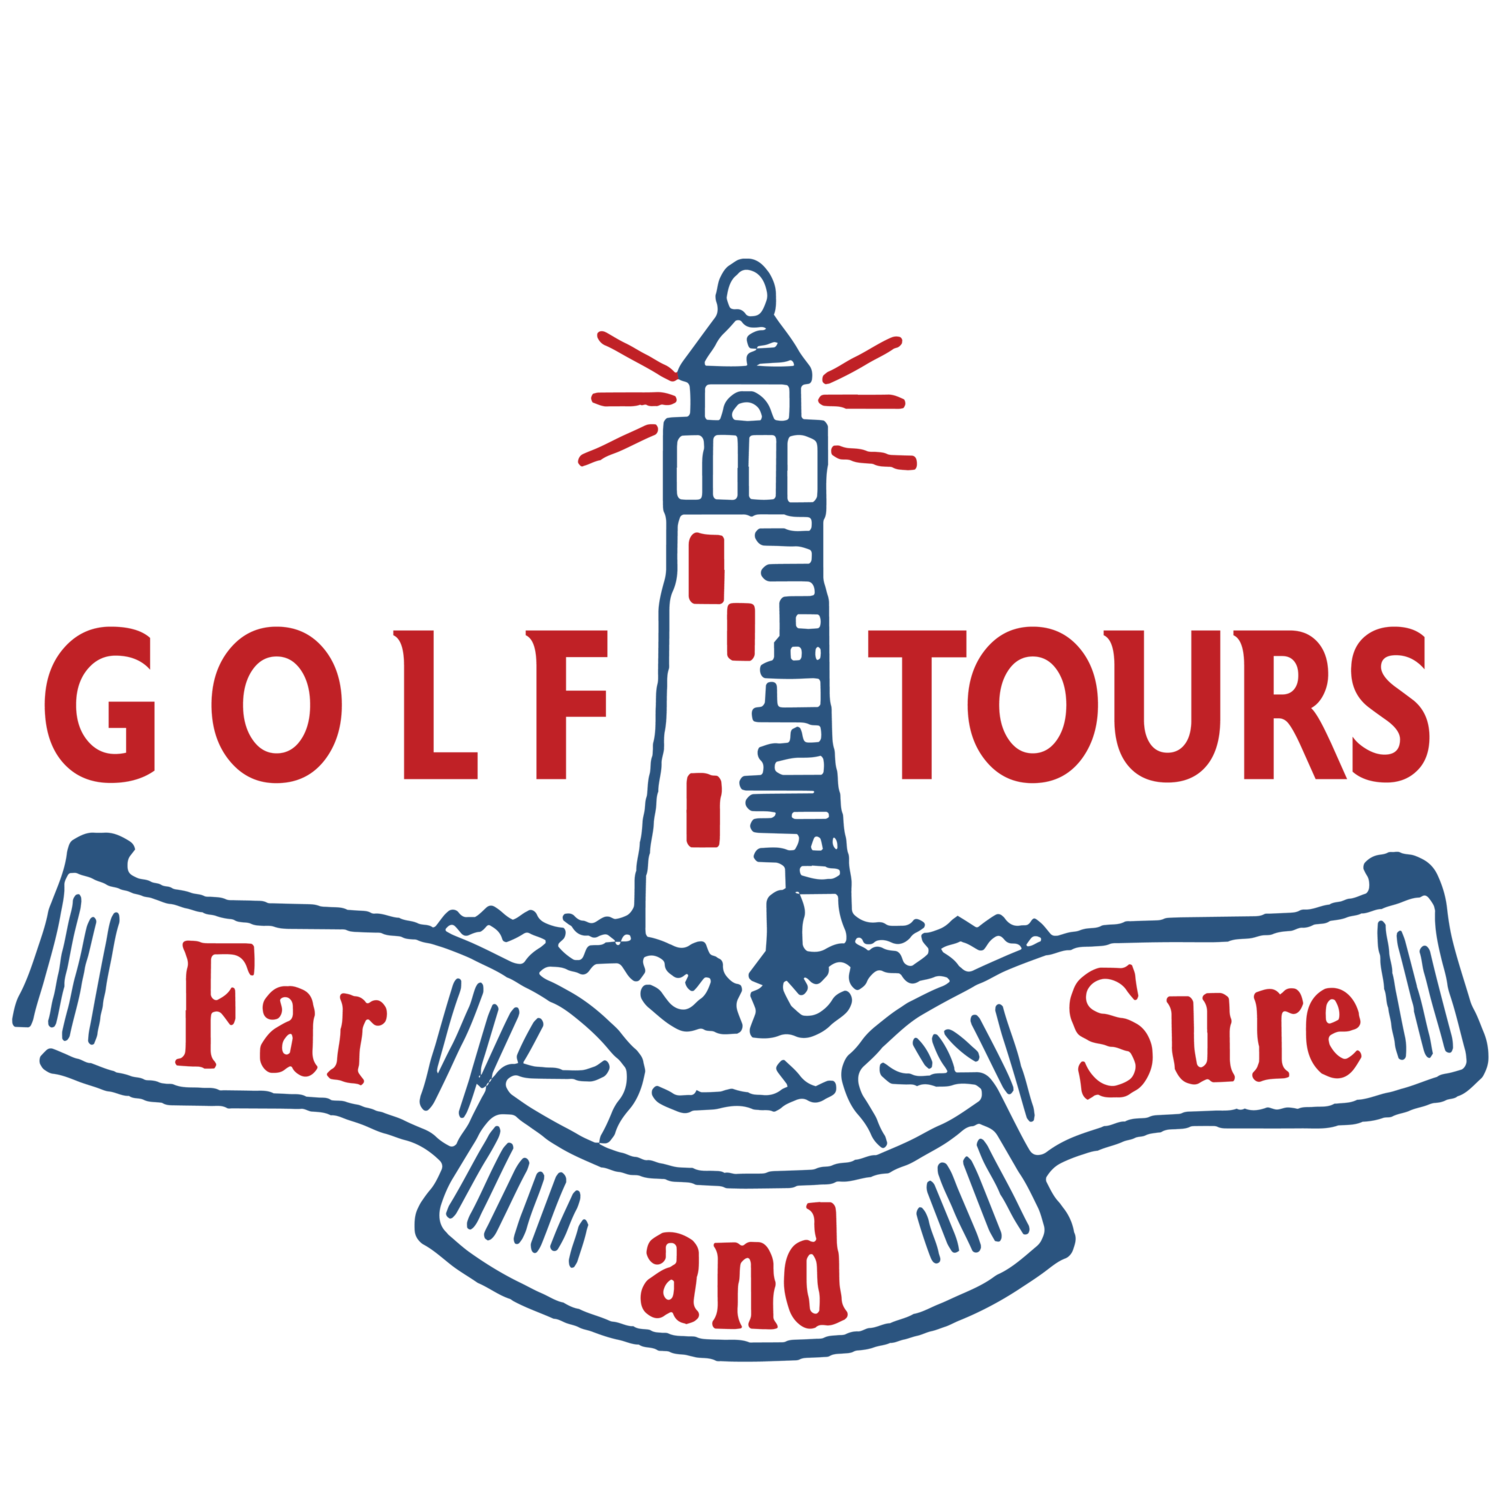 Far and Sure Golf Tours